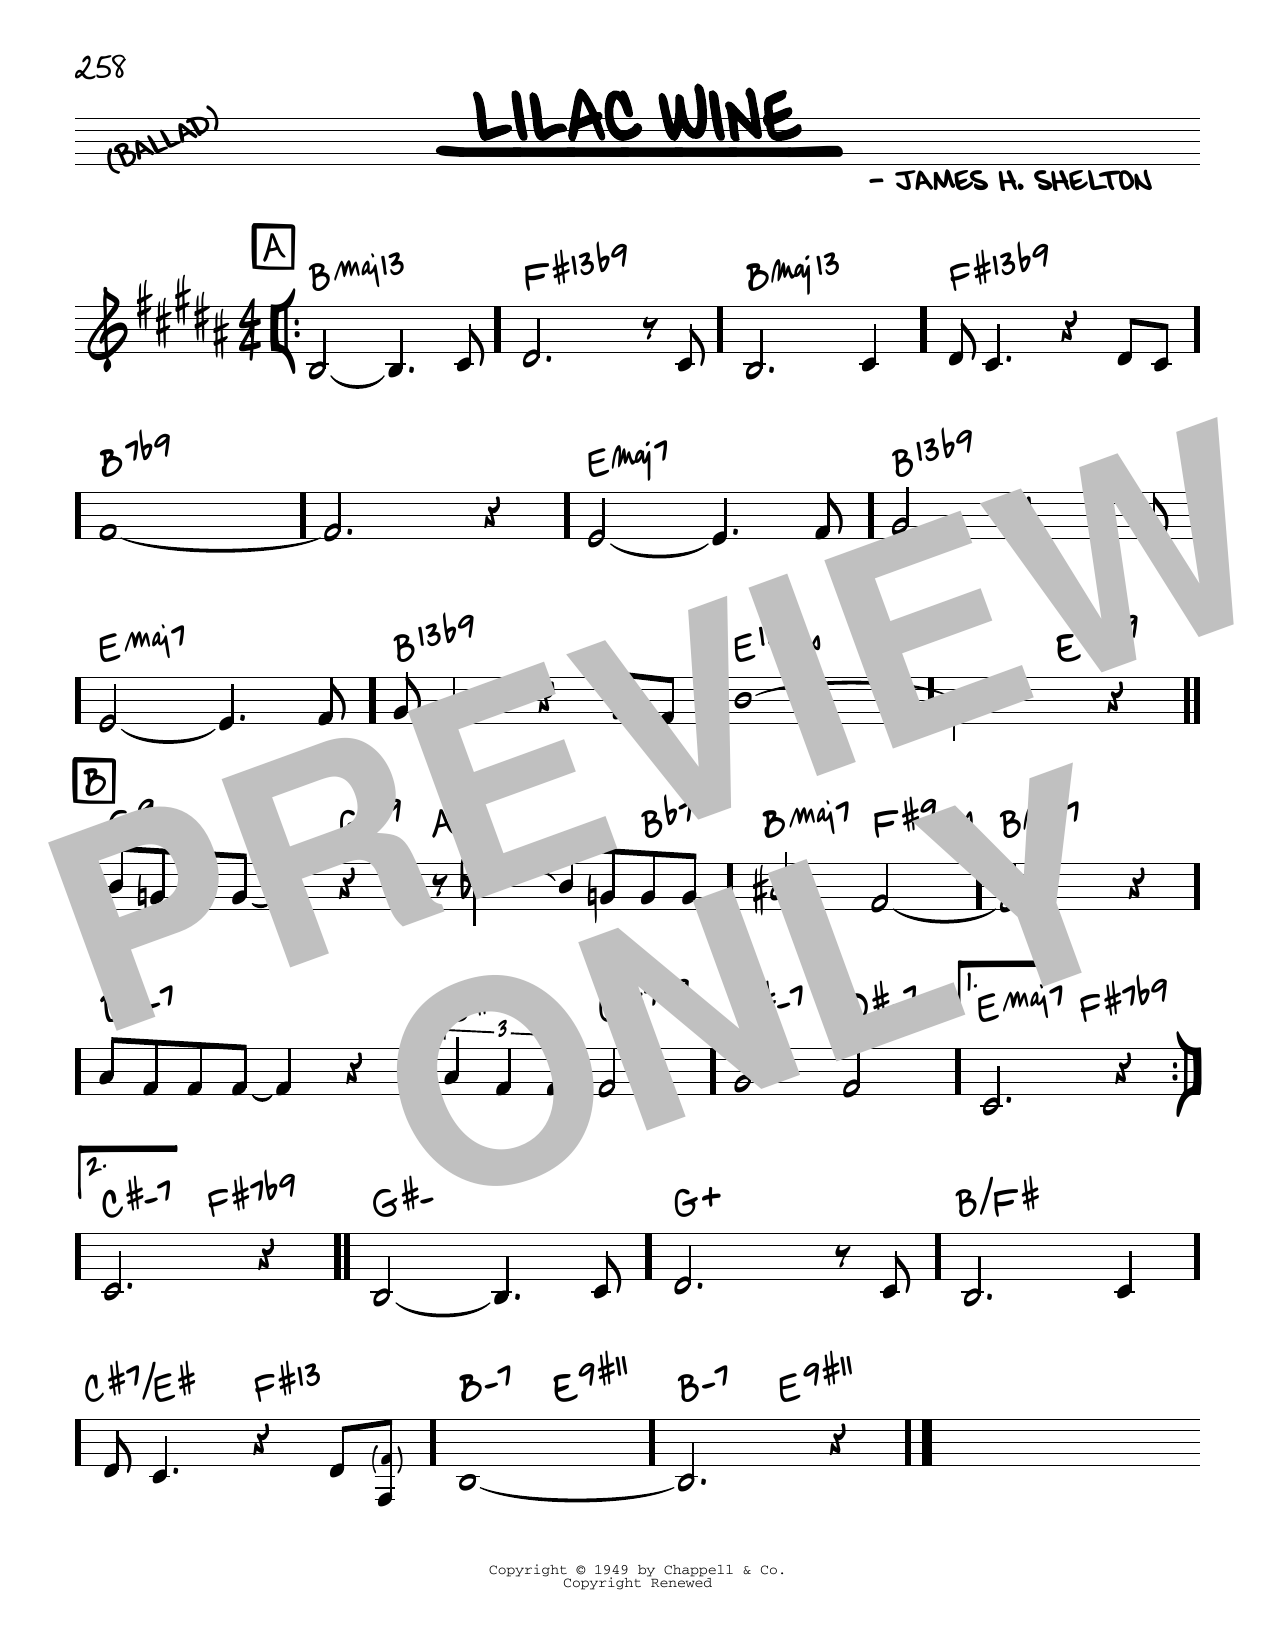 James Shelton Lilac Wine sheet music notes and chords. Download Printable PDF.